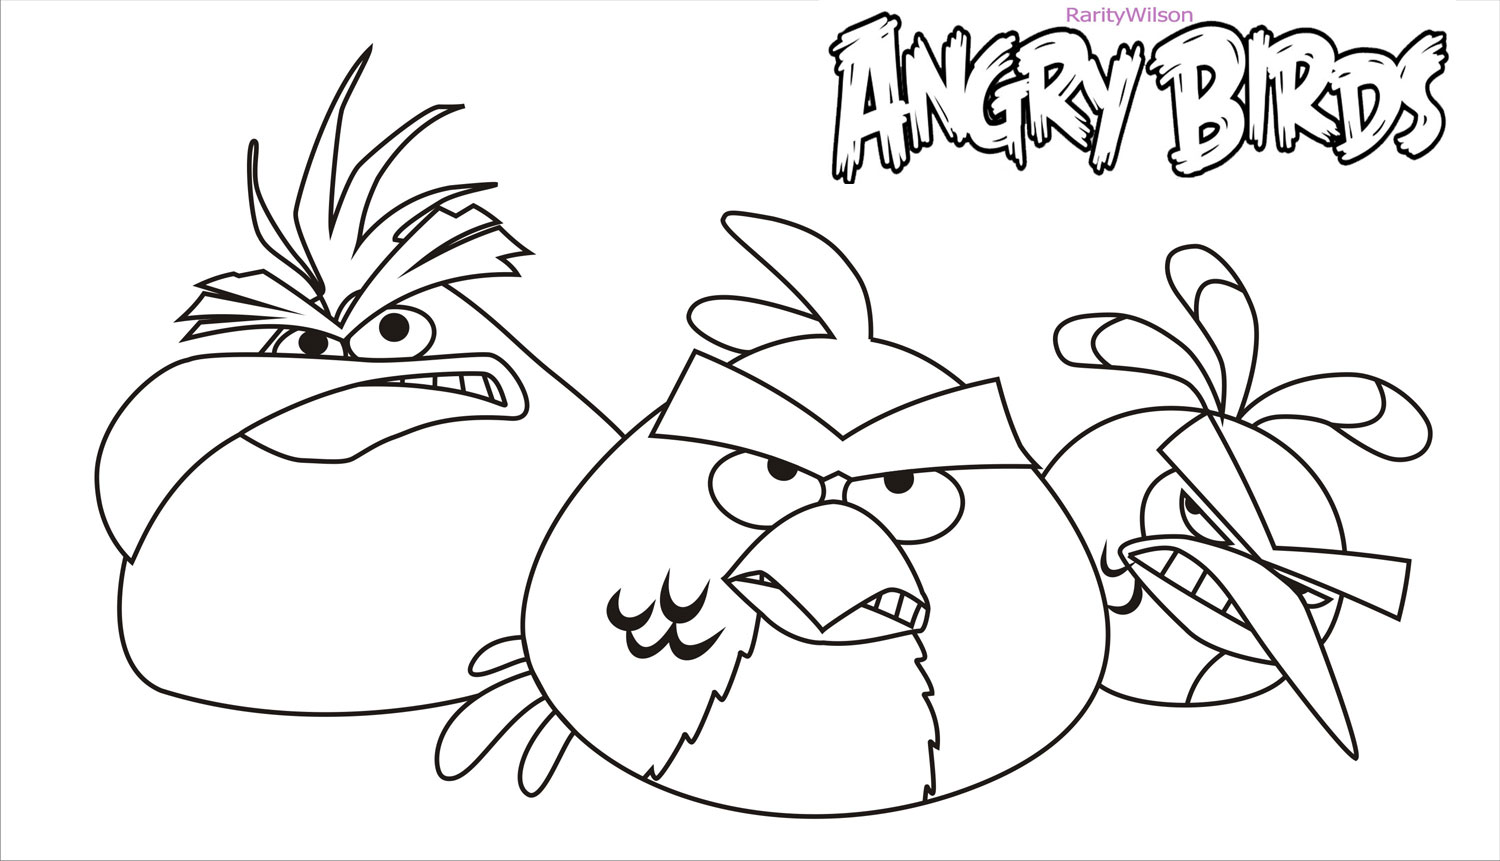 Dashing image with regard to angry birds printable coloring pages